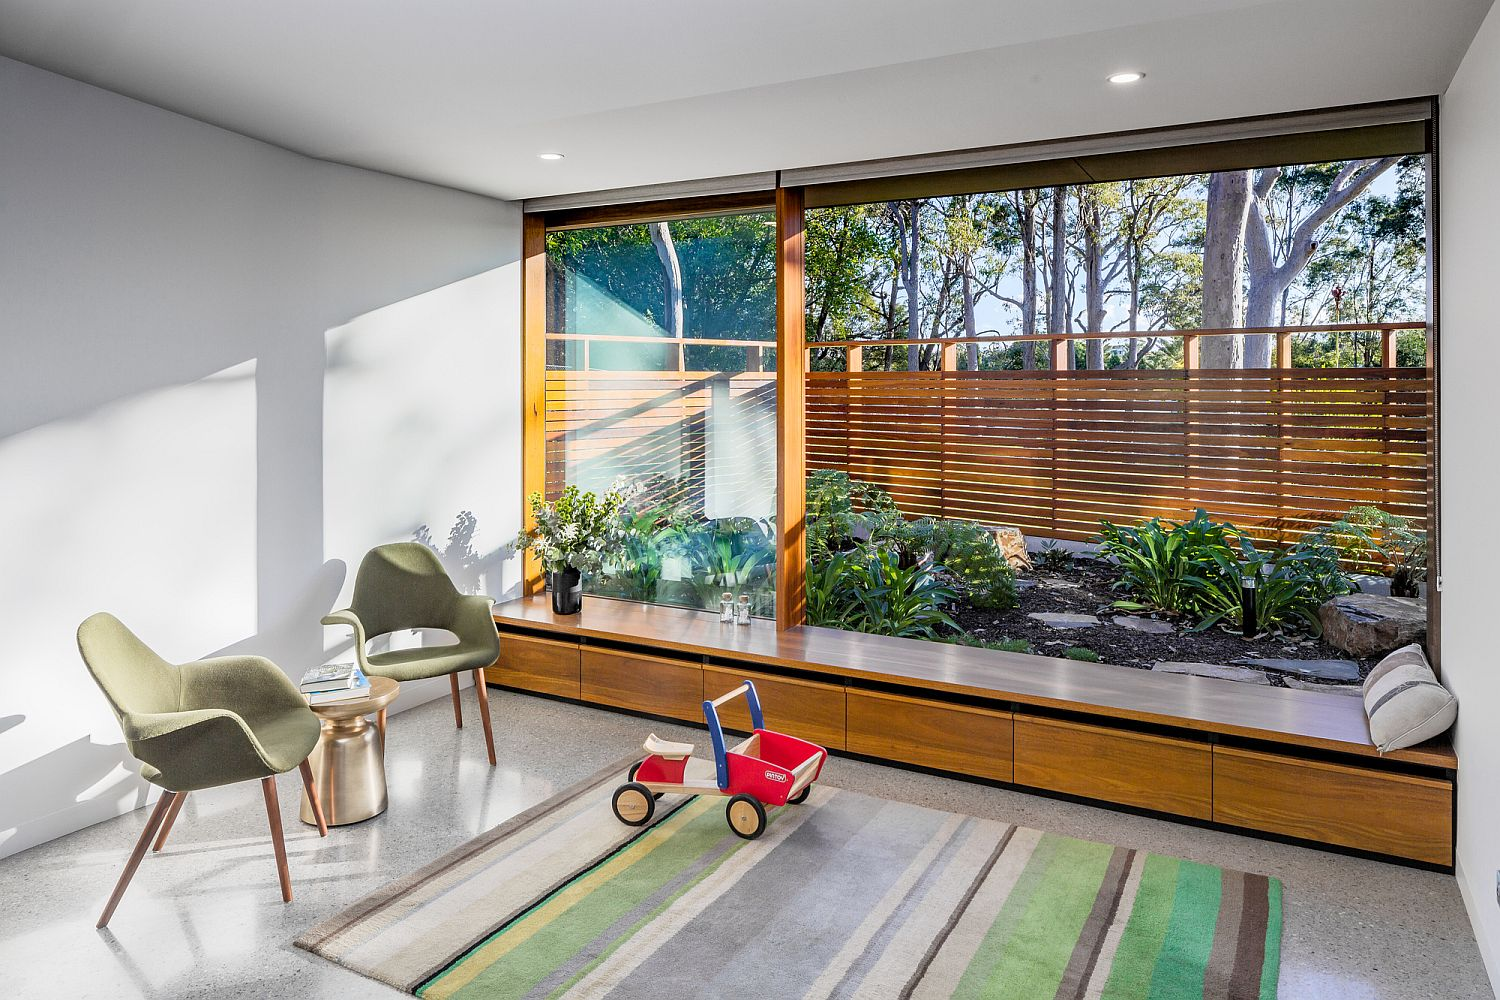 Smart-use-of-glass-walls-and-wooden-storage-and-seat